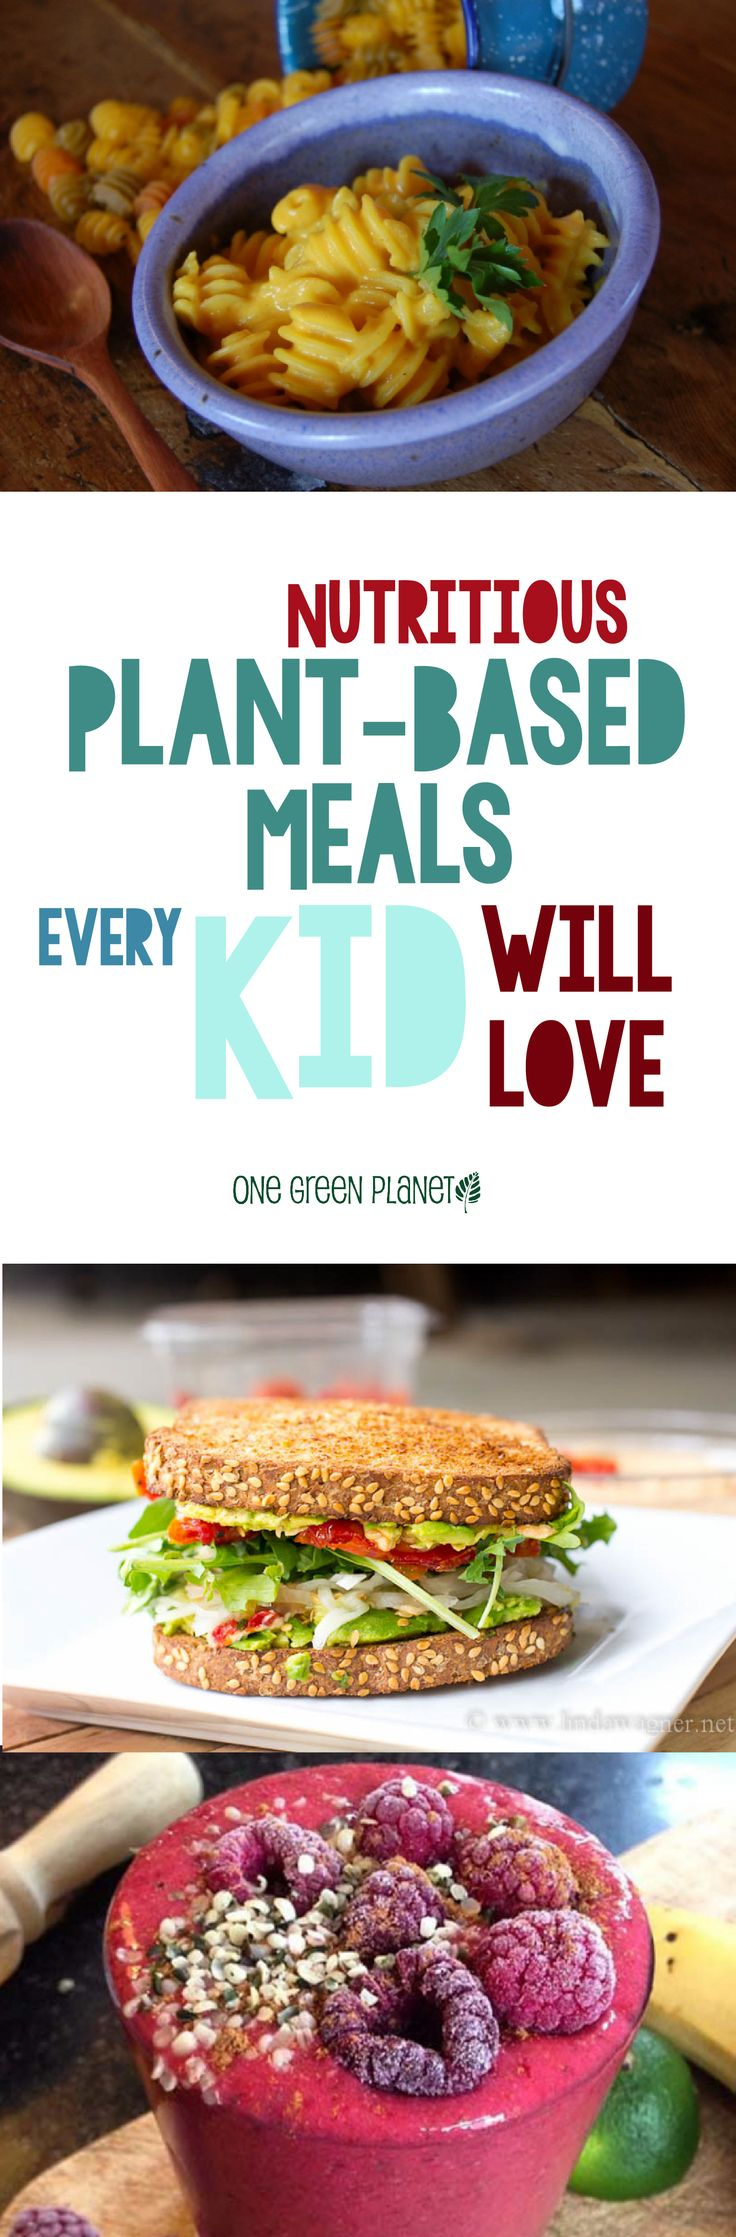 Nutritious plant based meals every kid will love